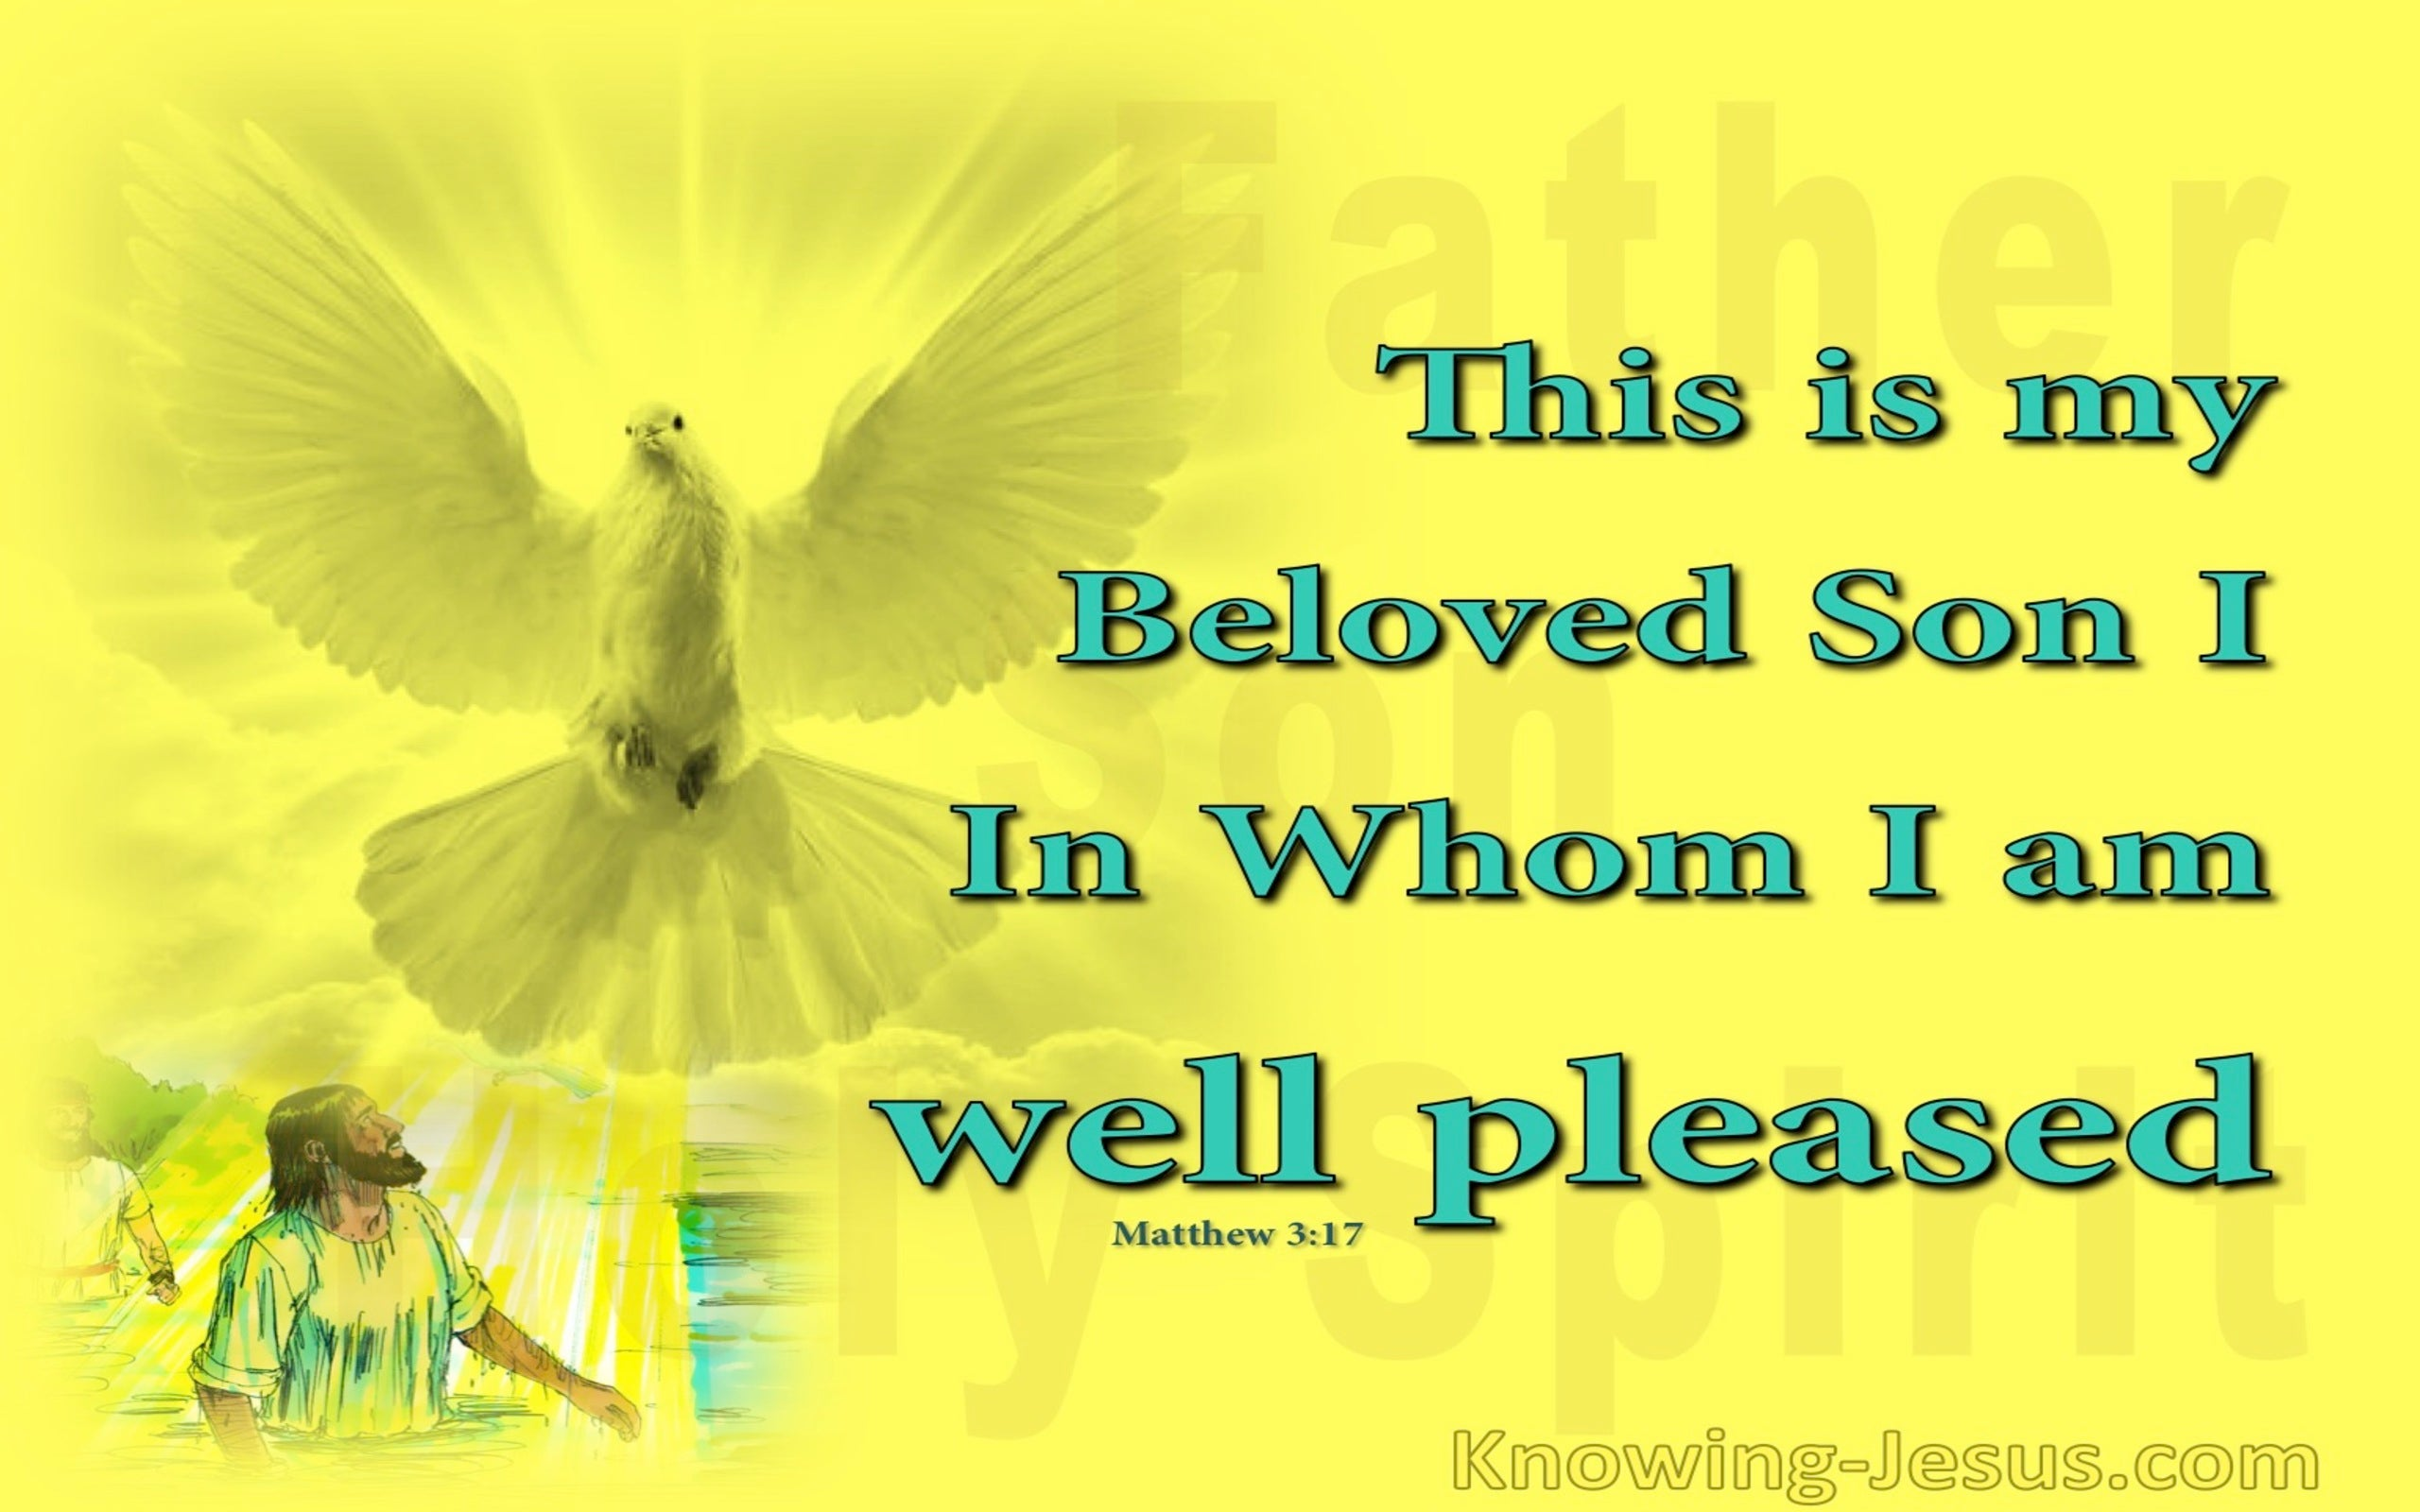 A Beautiful Picture (devotional) (yellow) - Matthew 3:17